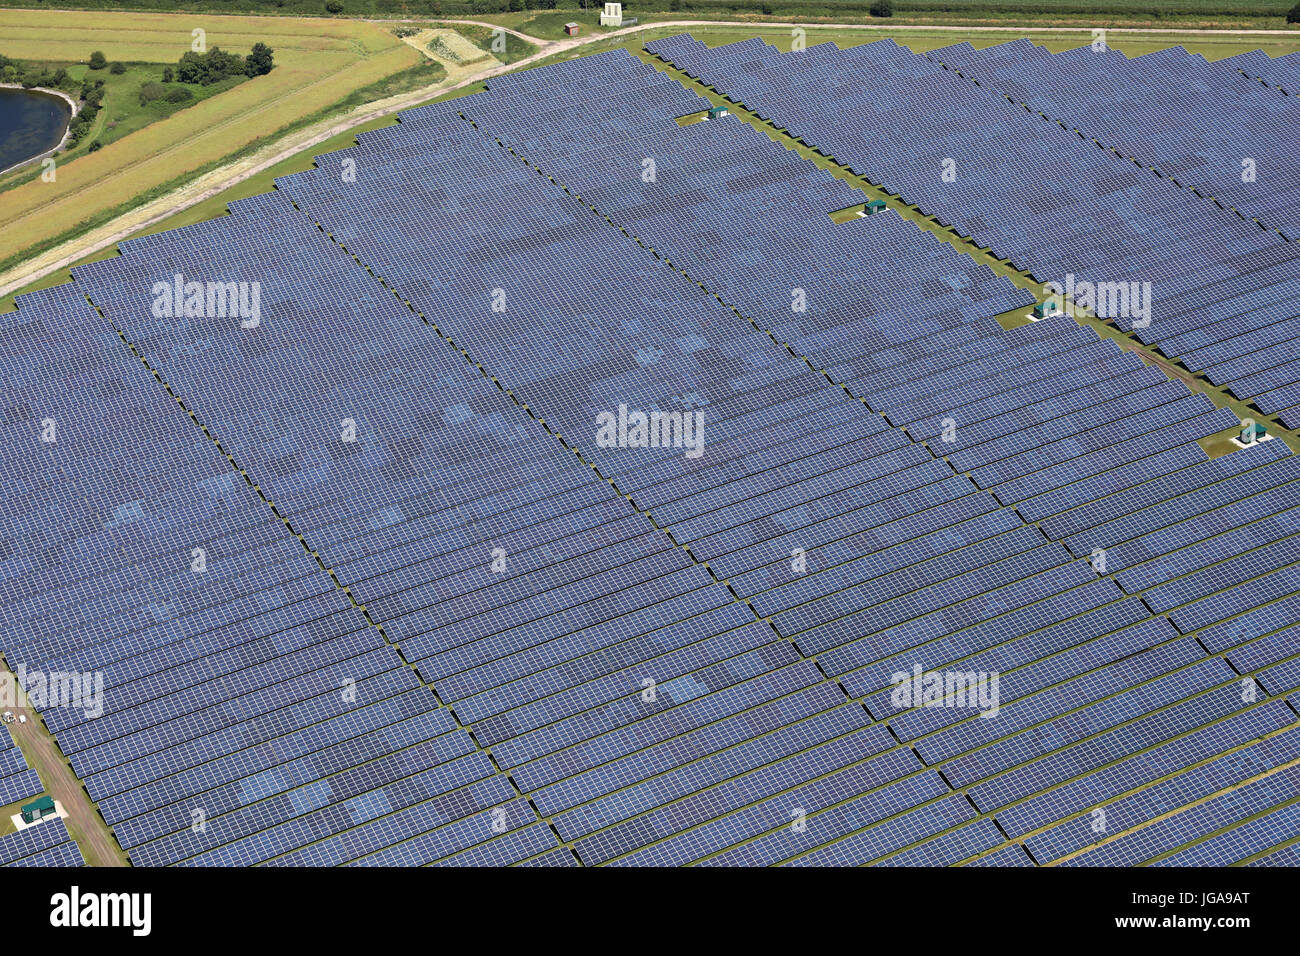 aerial view of a solar farm in Cheshire, UK - Stock Image